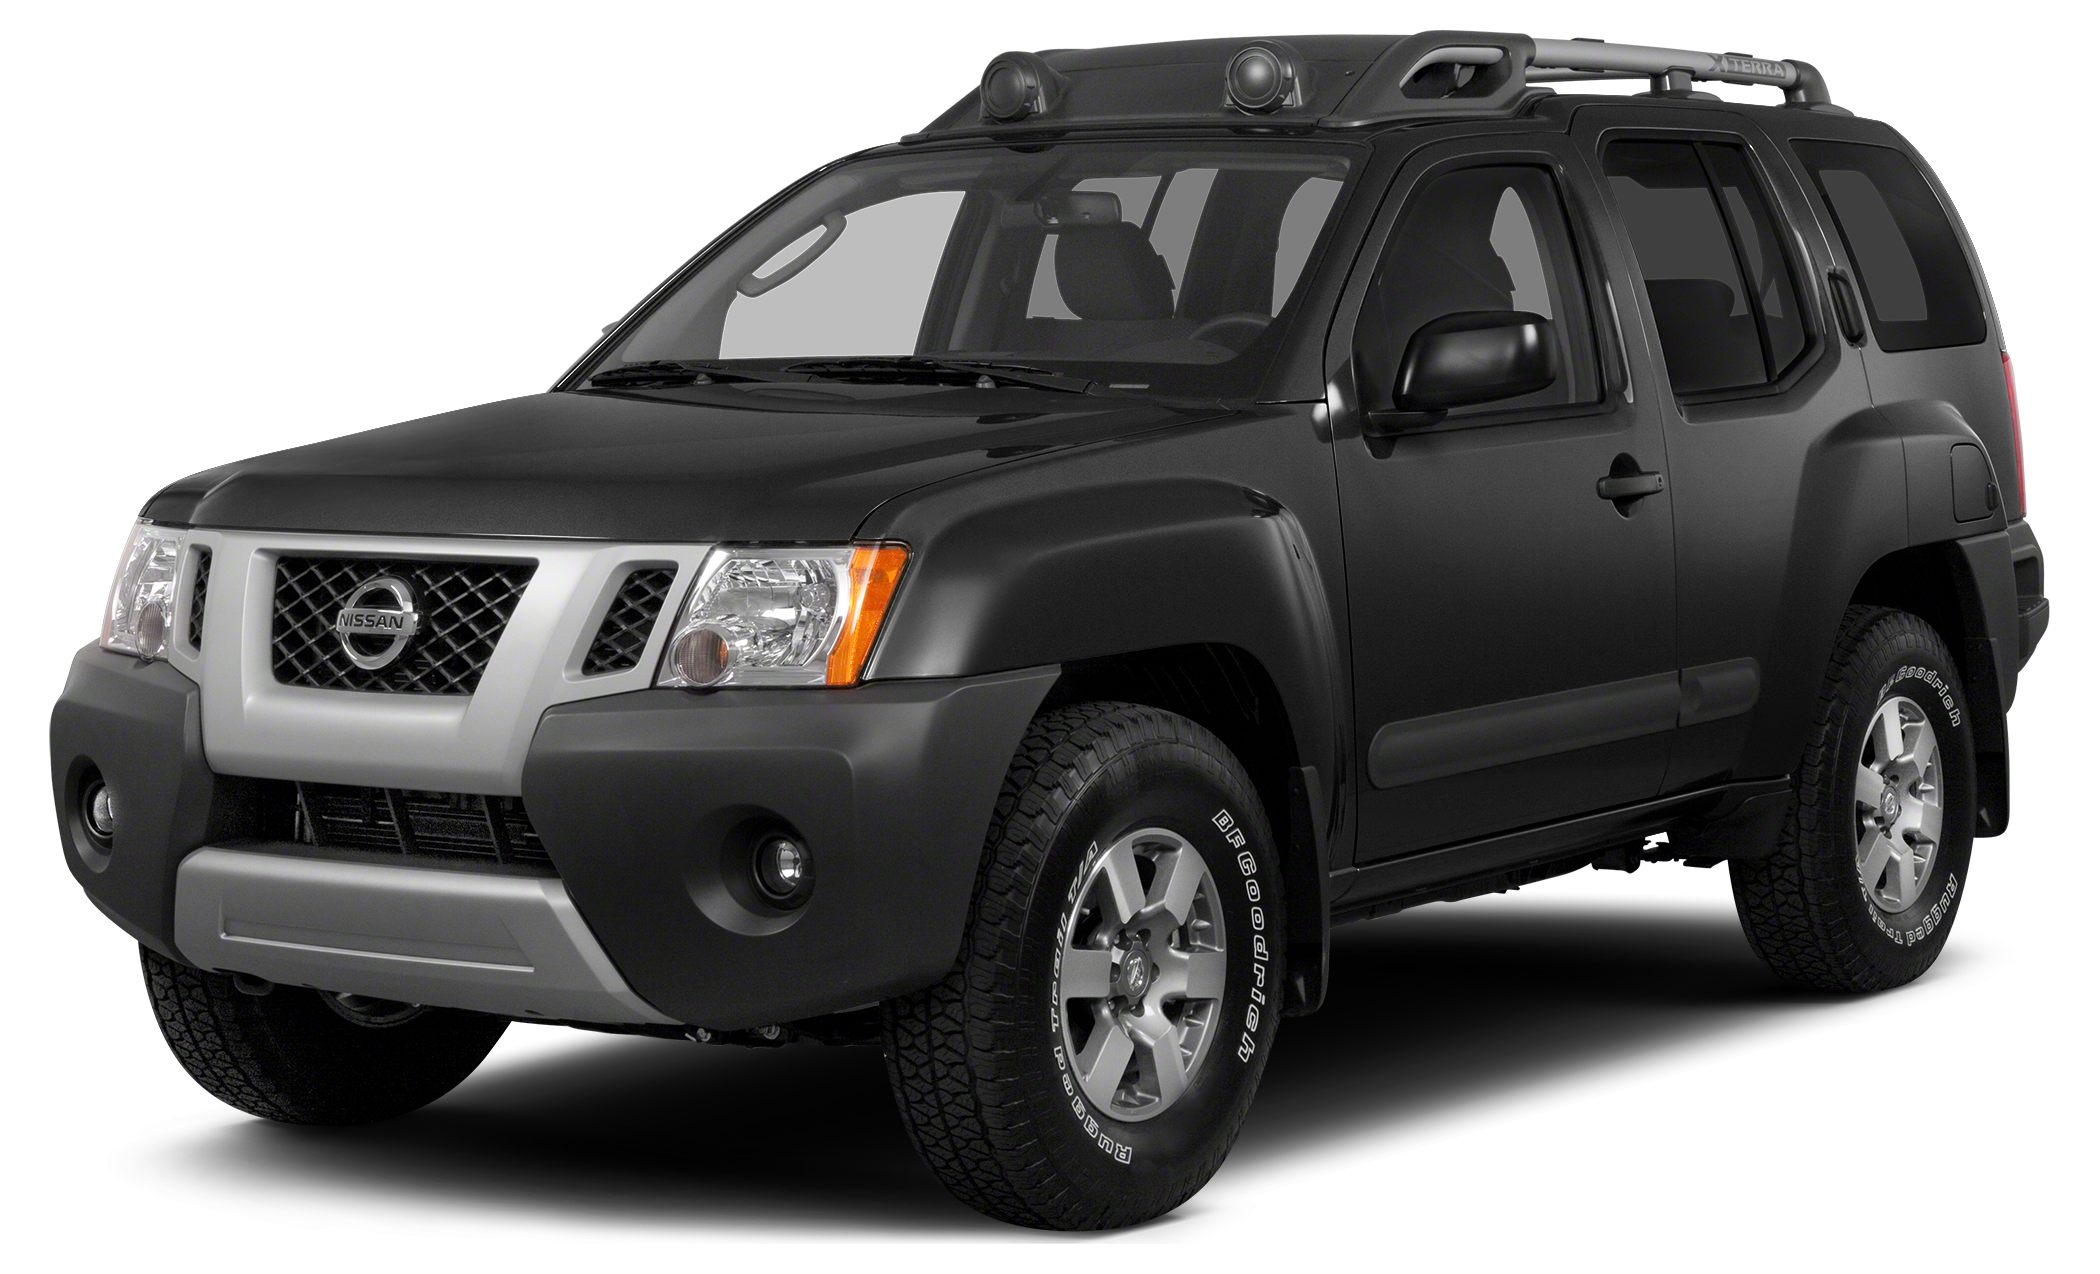 2015 Nissan Xterra X Color Super Black Stock X22430 VIN 5N1AN0NW4FN657023